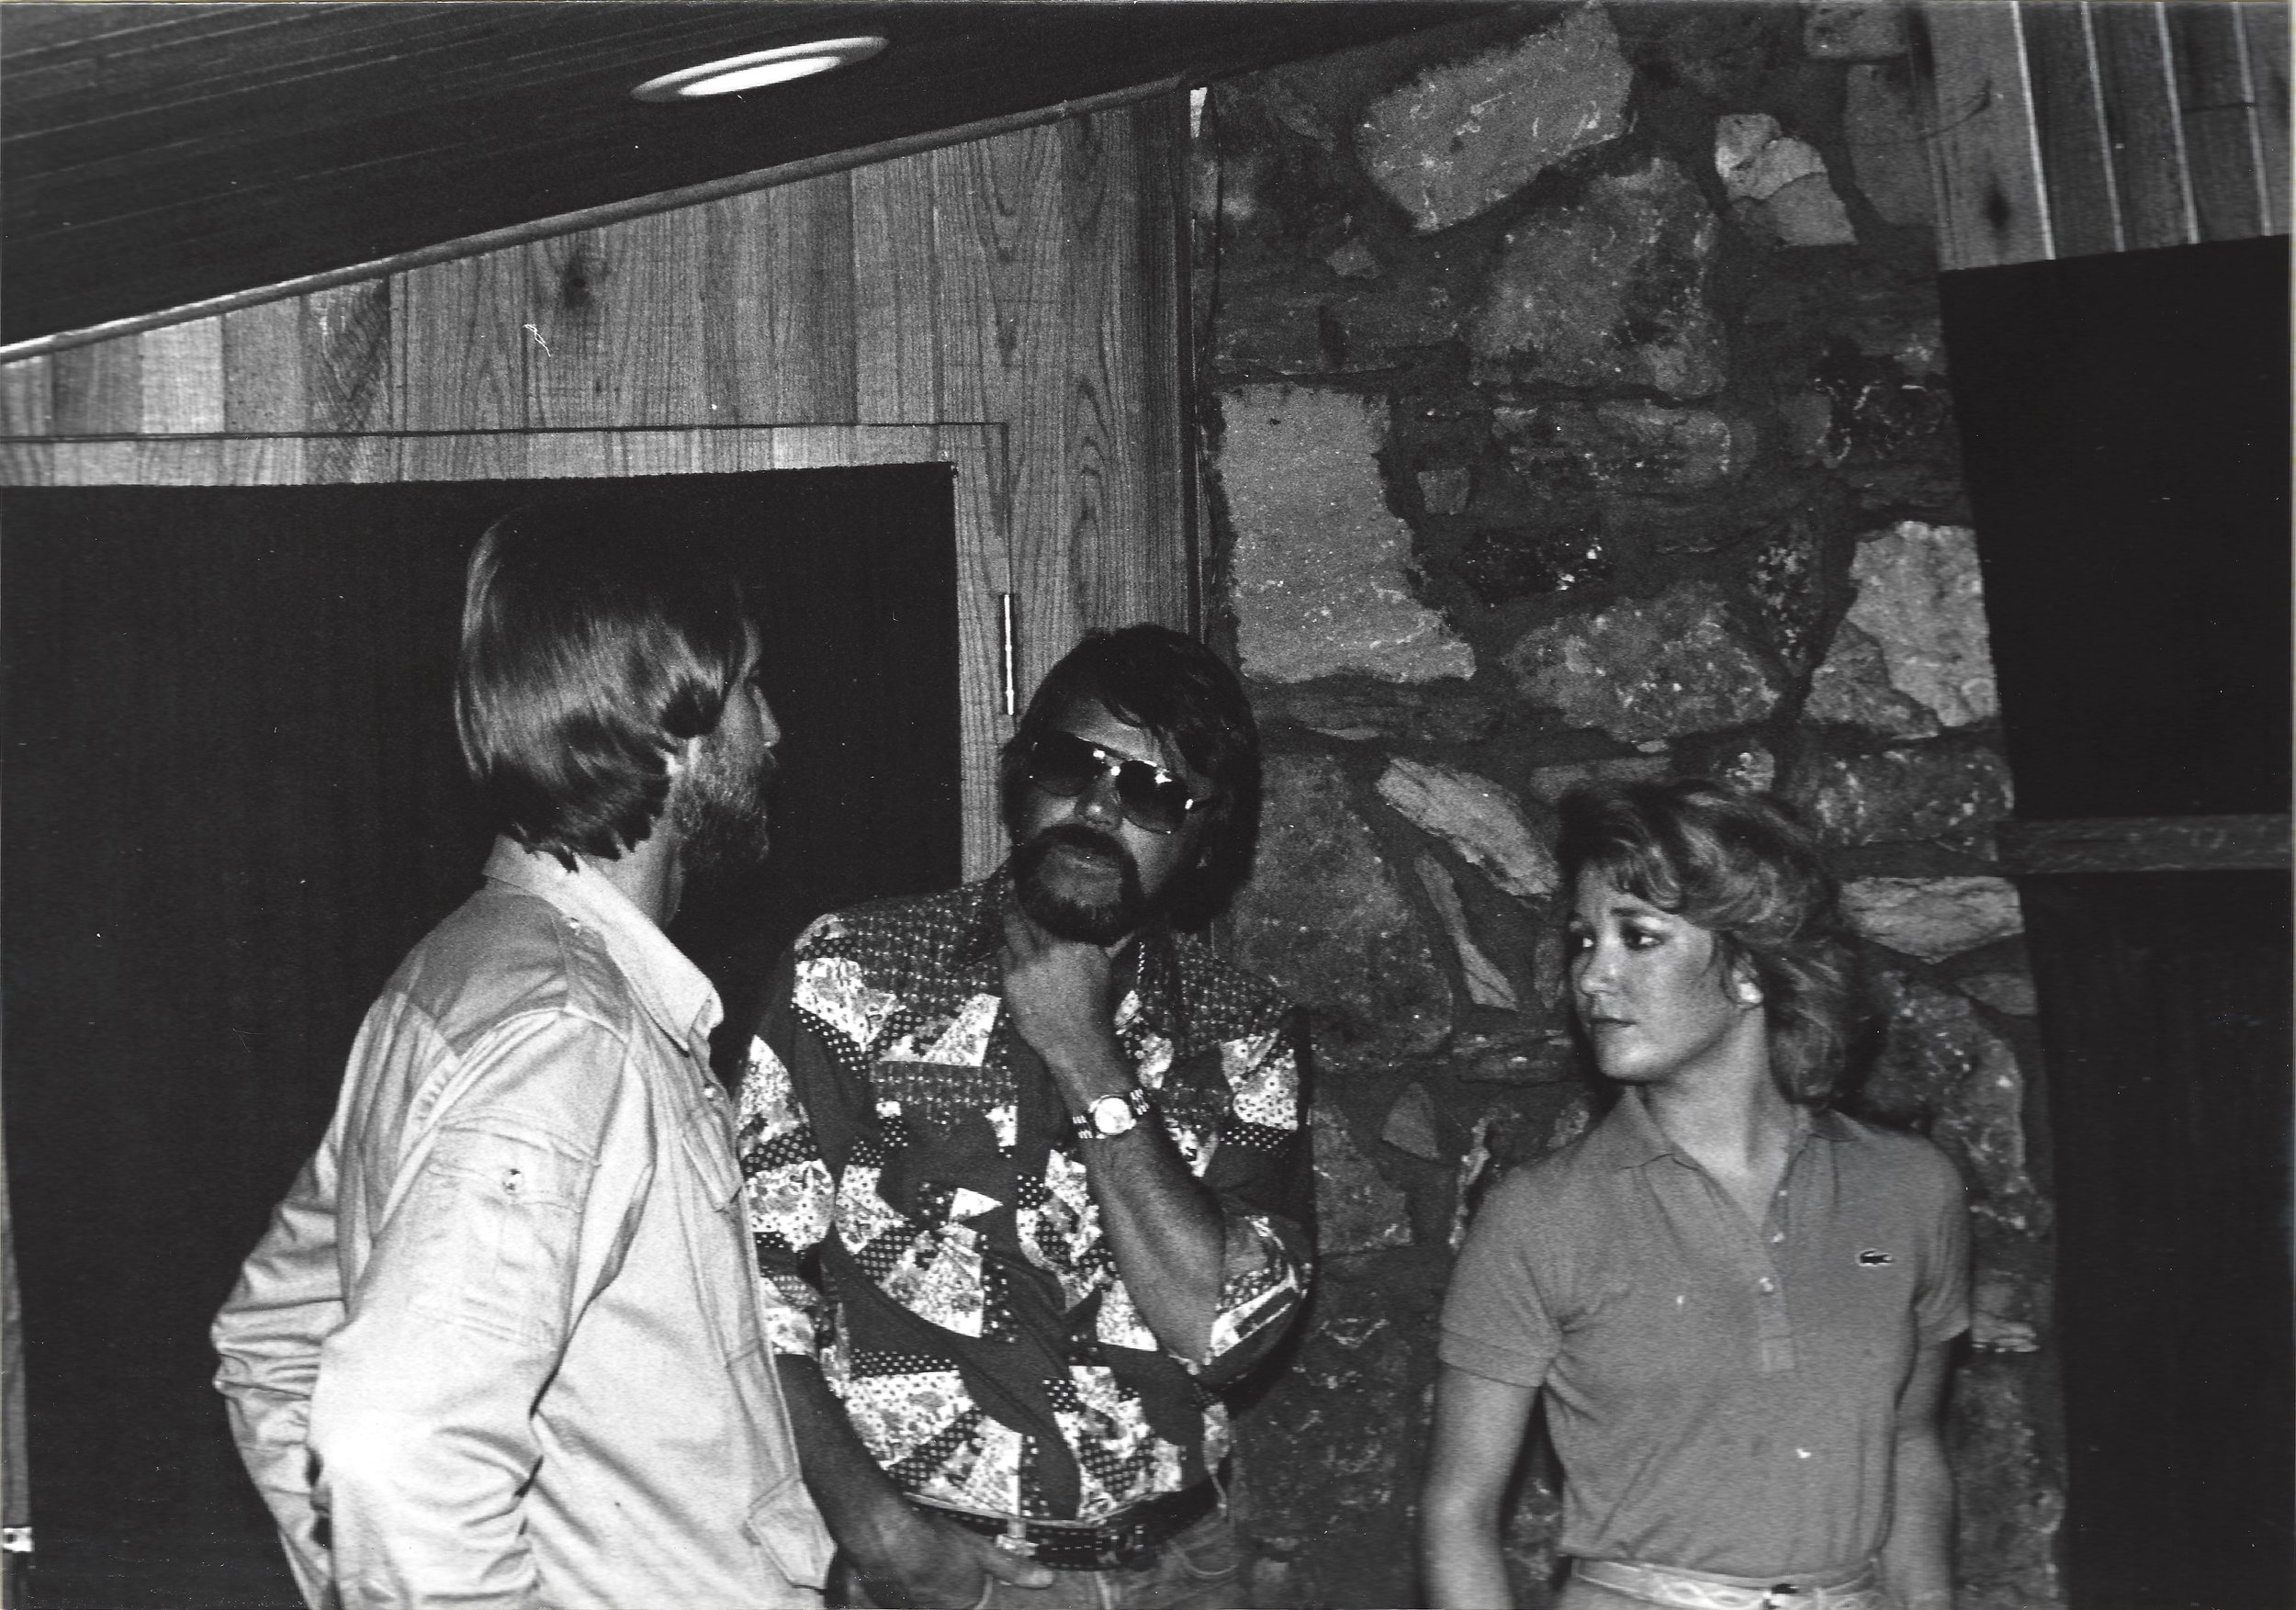 Jerry Crutchfield - Glen Campbell - Tanya Tucker - Dream Lover Sessions 1979 2.jpeg